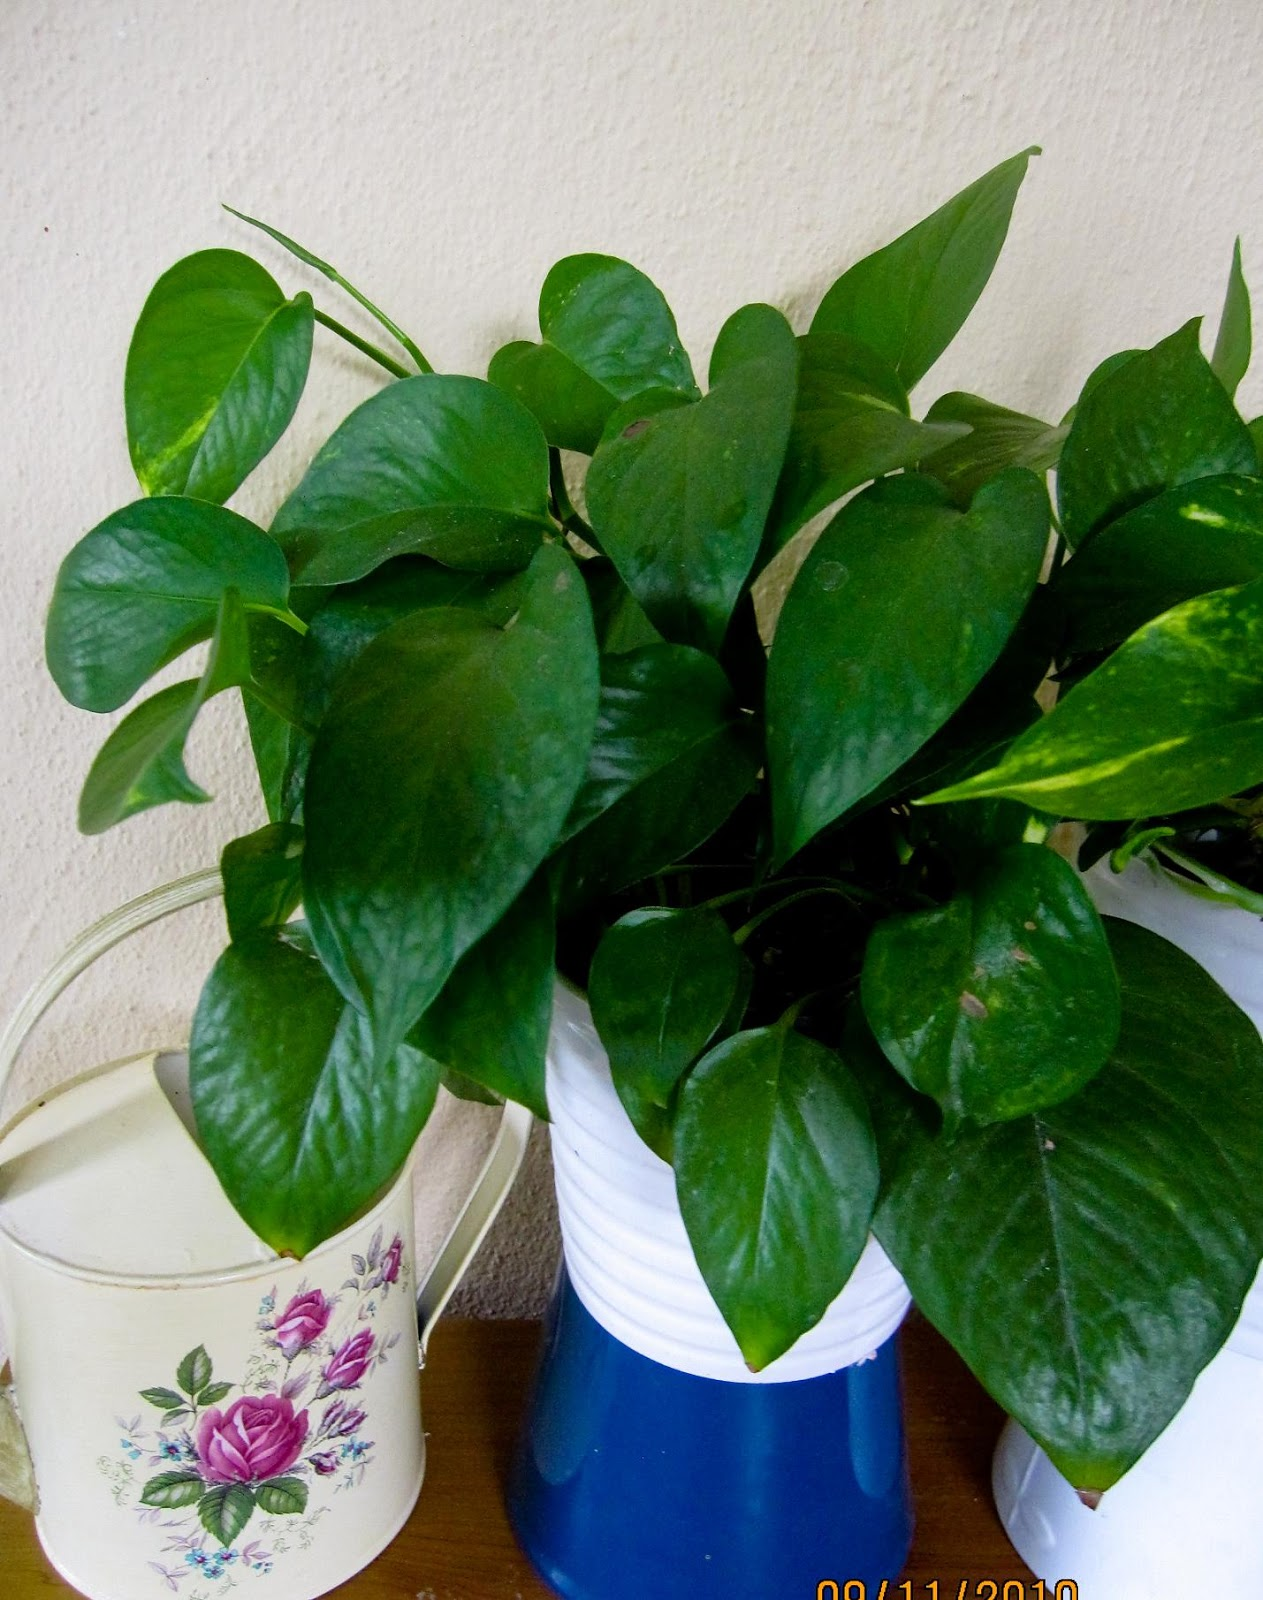 Money Plant (Scindapsus aureus) Benefits: Myth or Reality